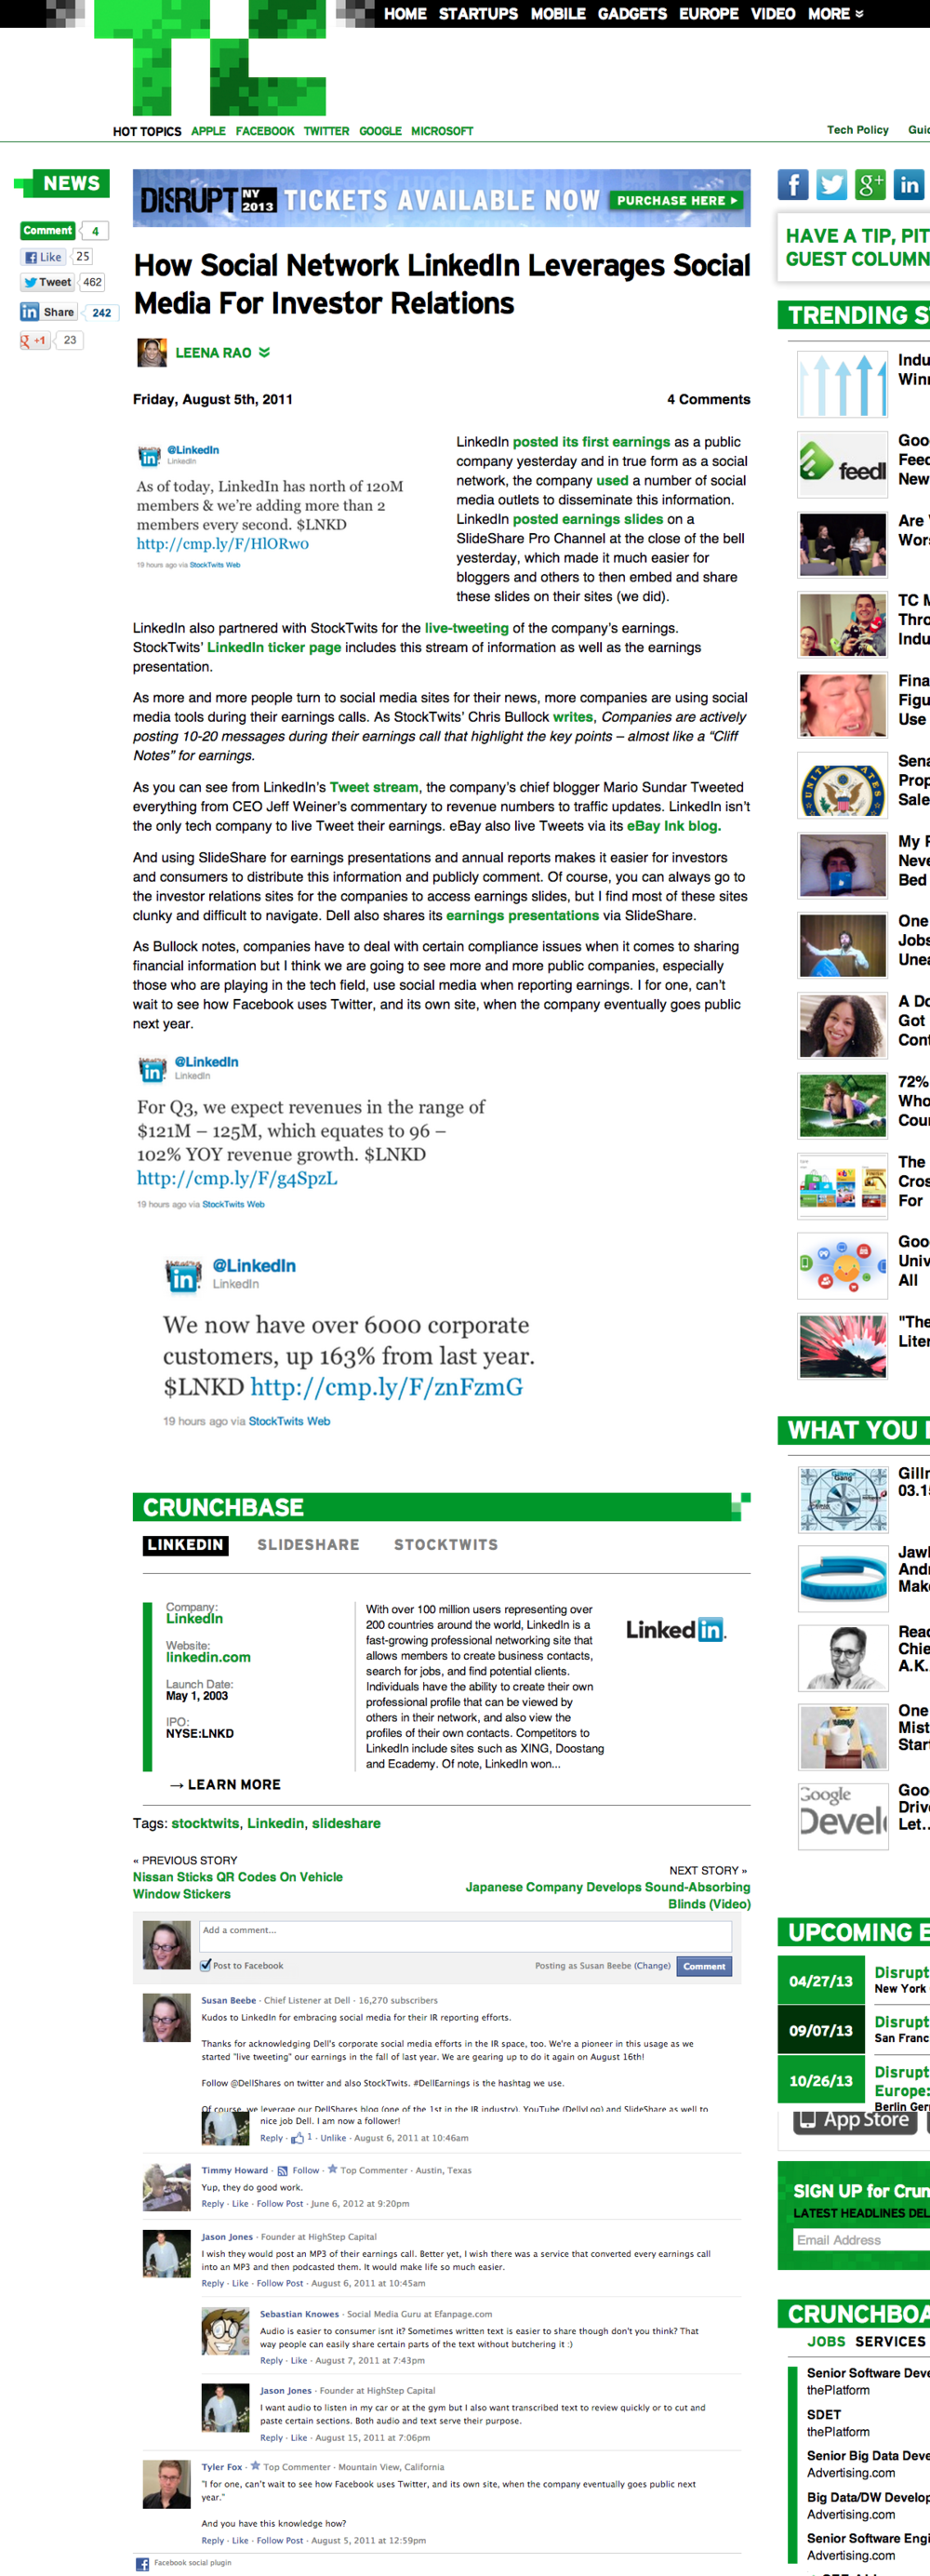 TechCrunch mention of Dell social media for investor relations / slideshare.